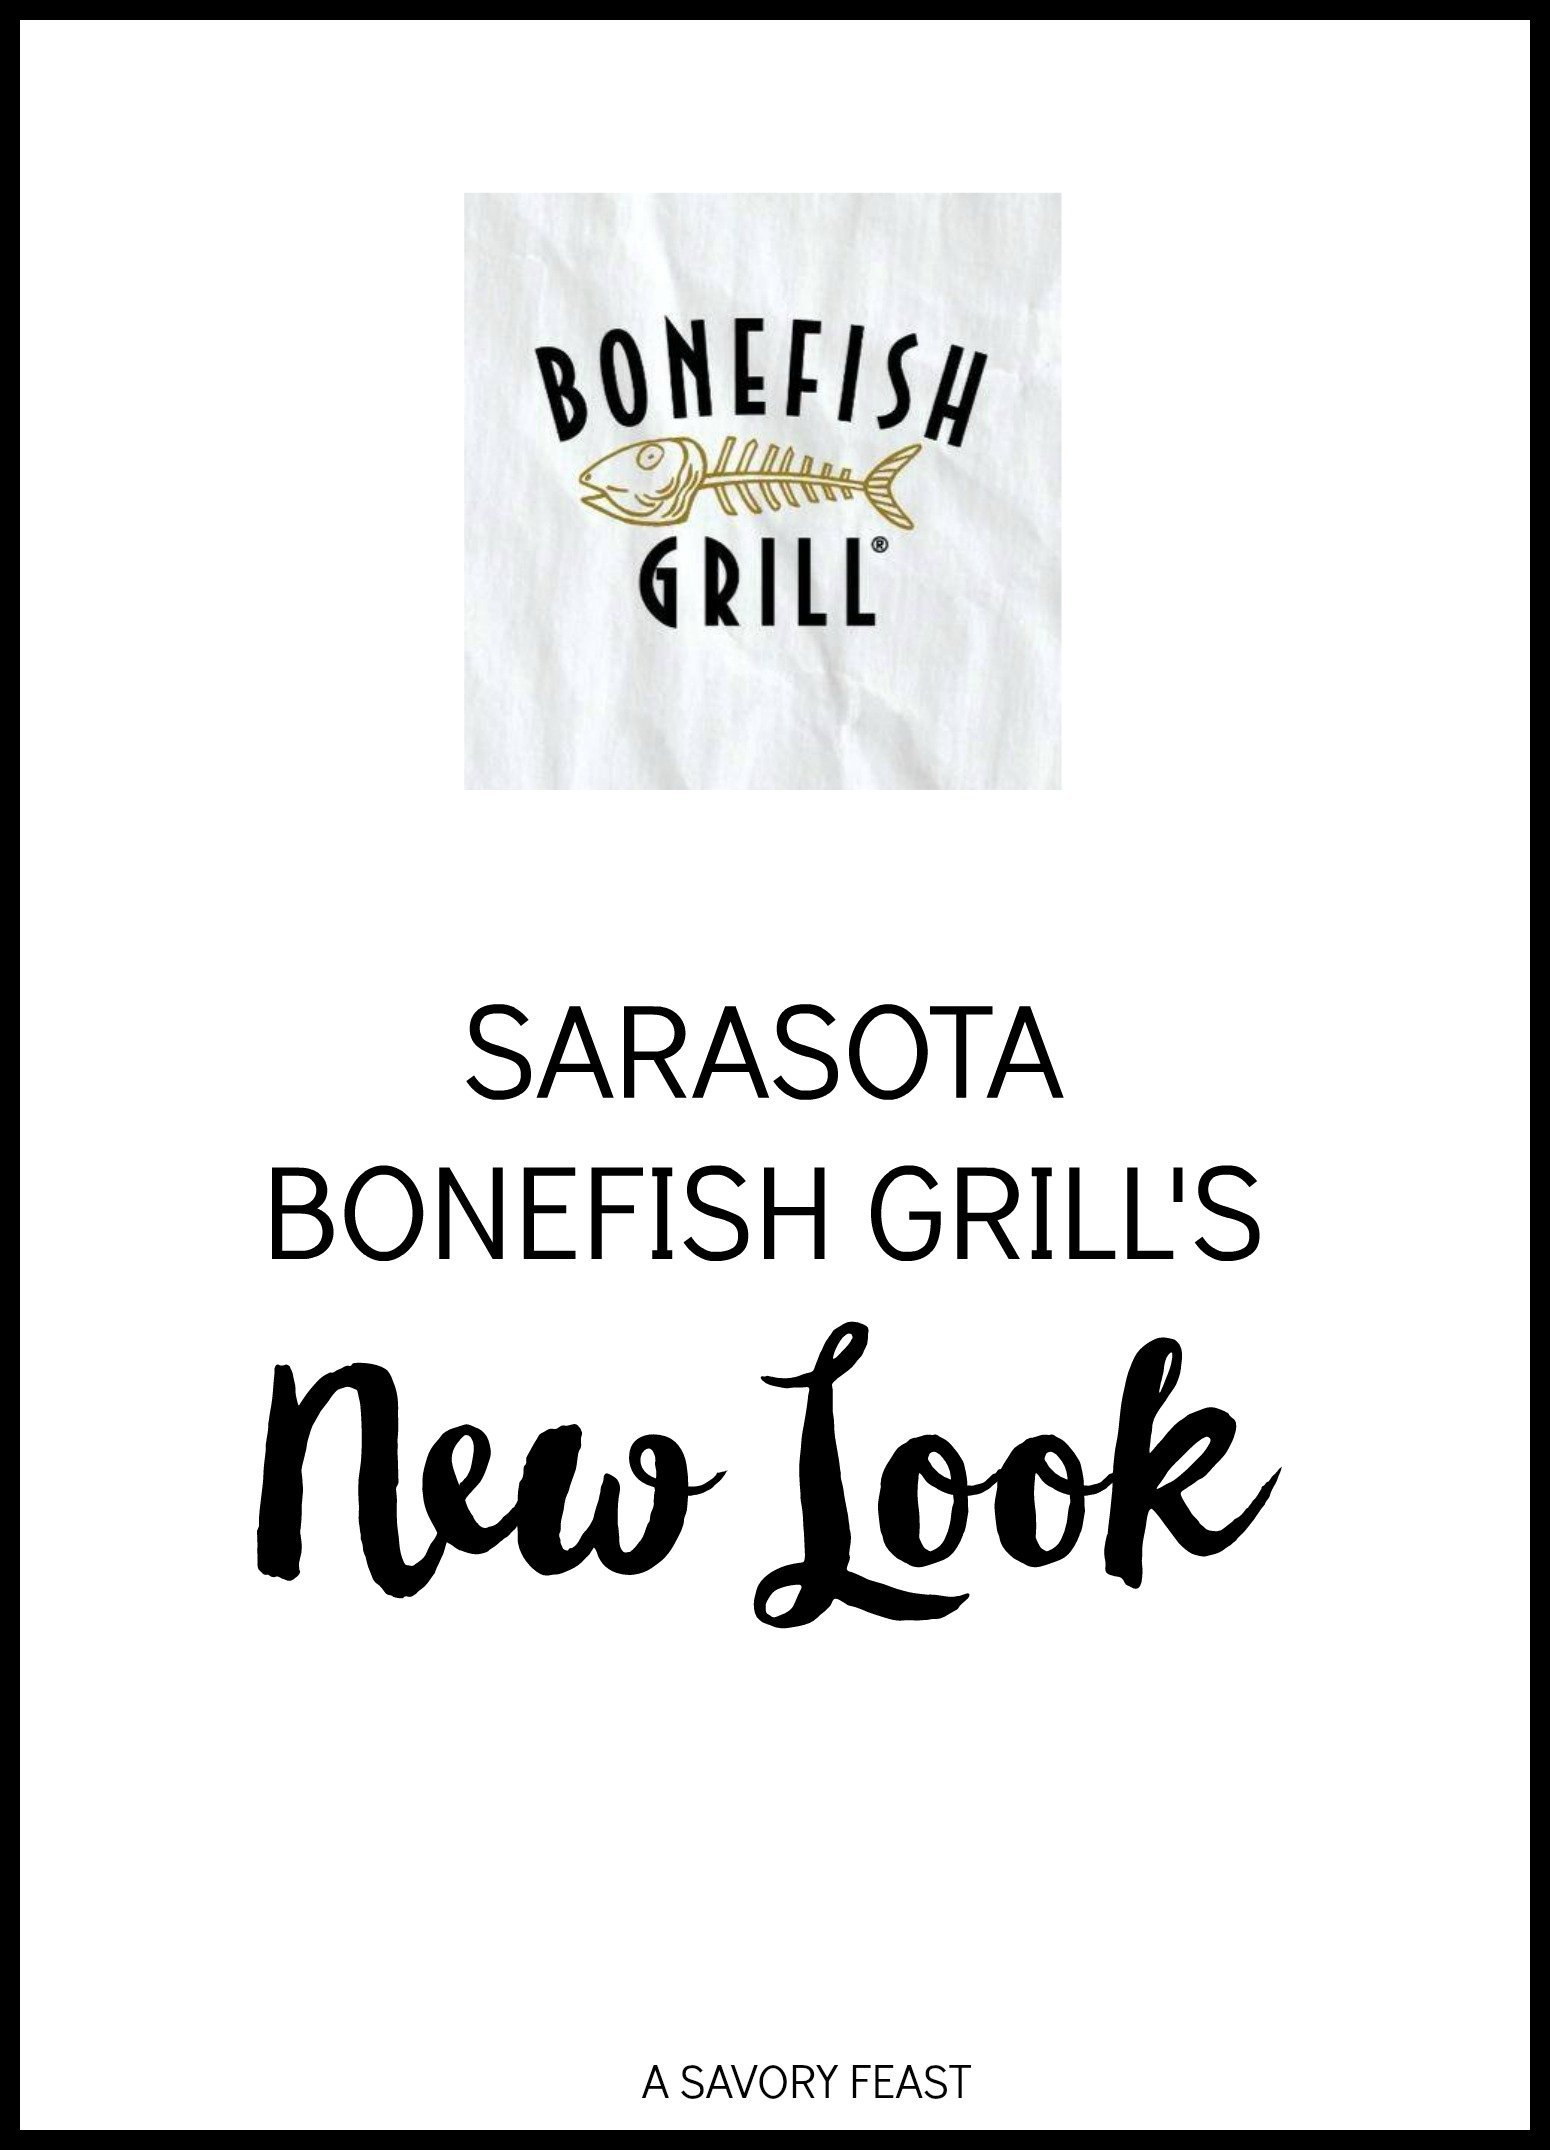 Bonefish Grill in Sarasota has a brand new look and lots of delicious new items on the menu!